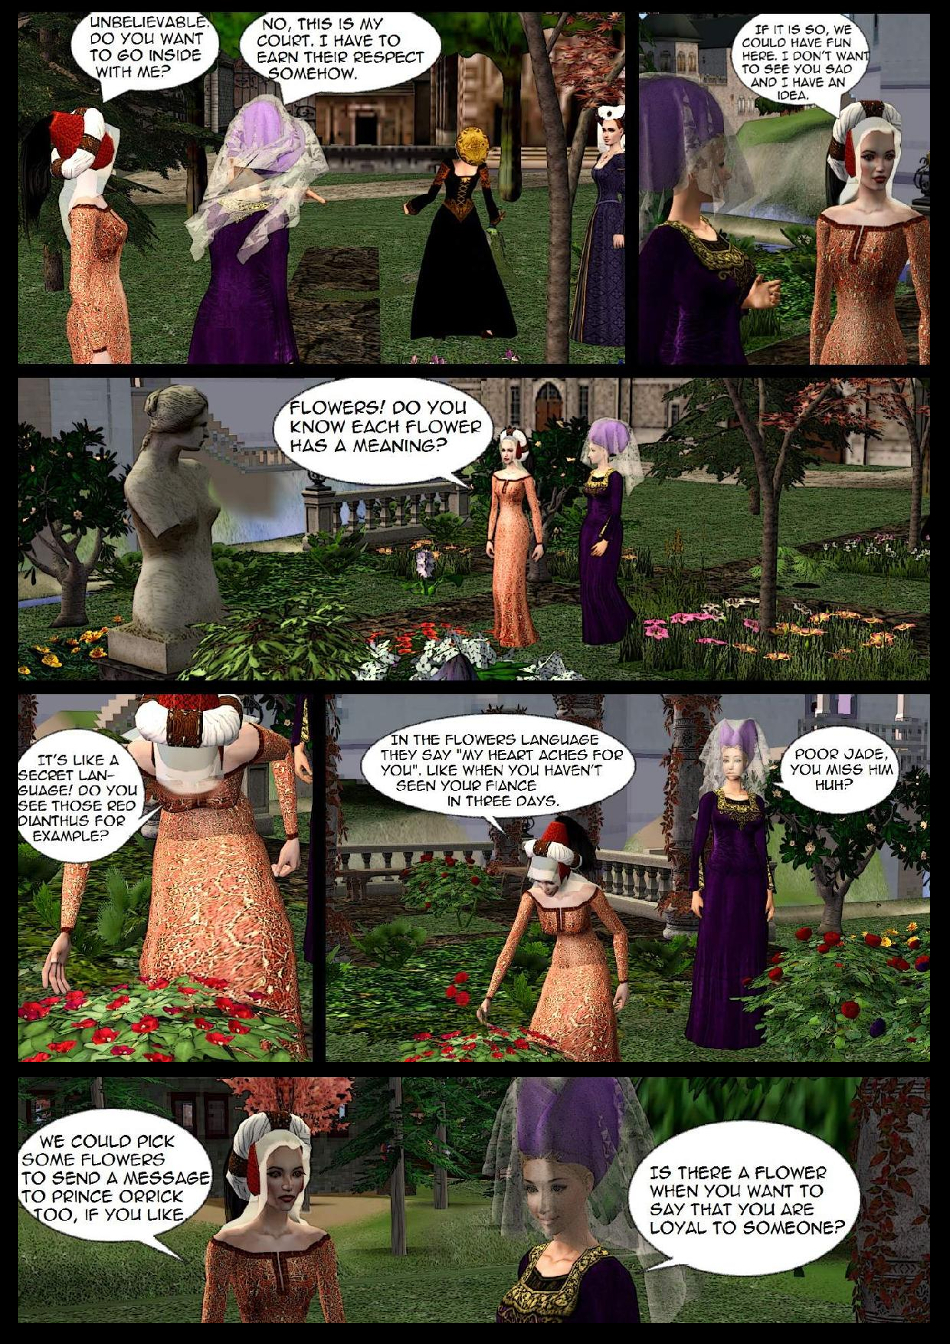 The flower language p11